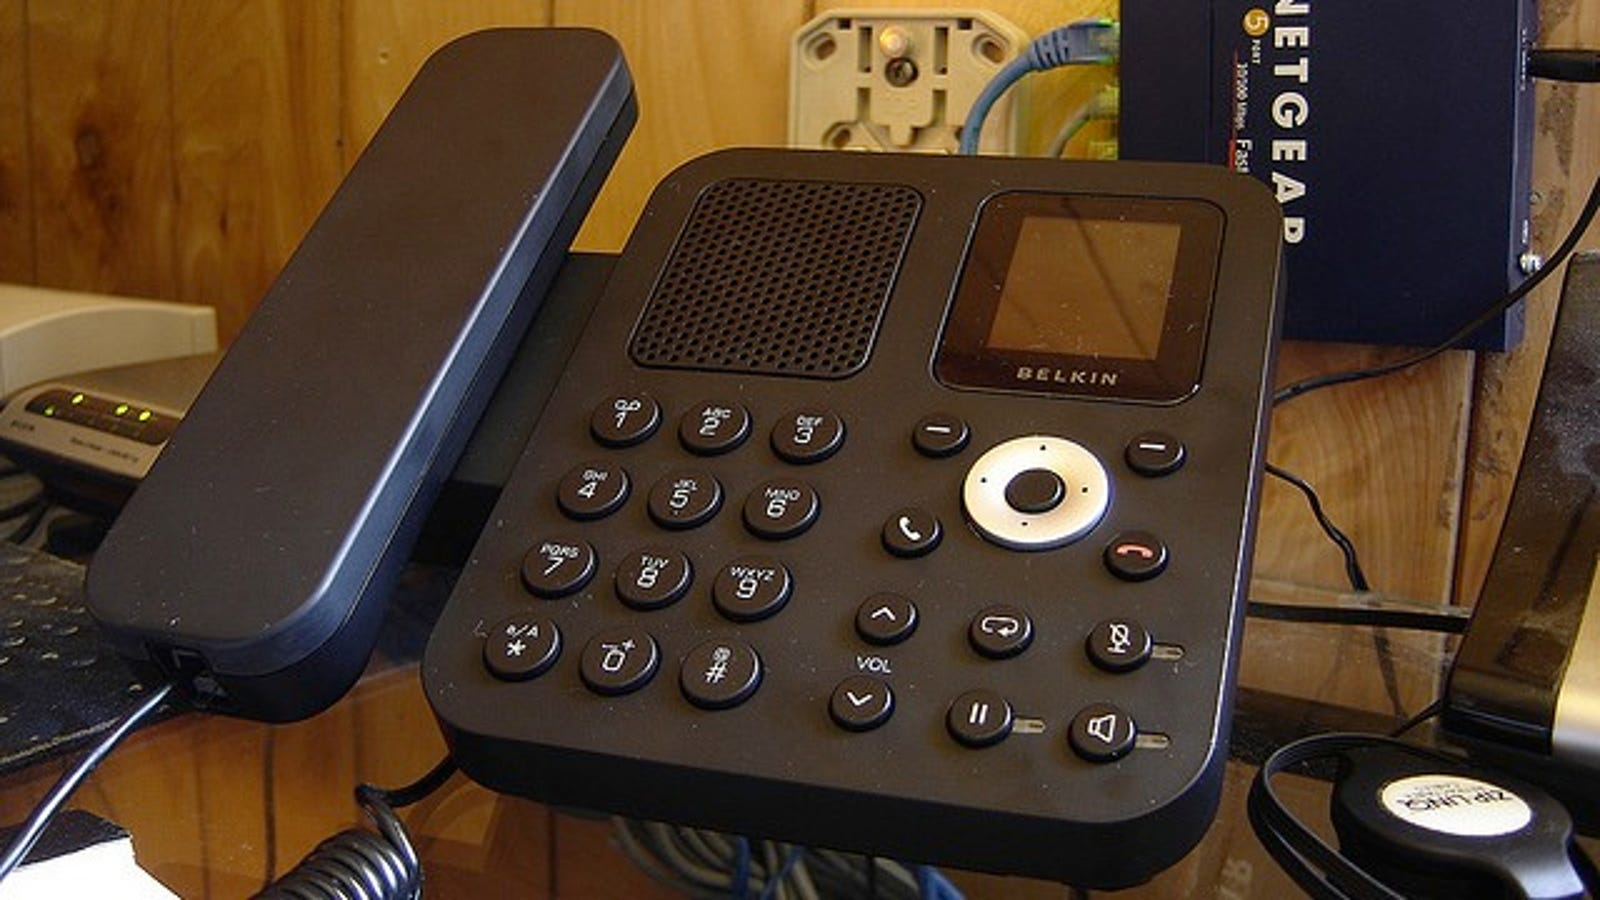 Five Best Ways to Use a Regular Phone for Internet Calls